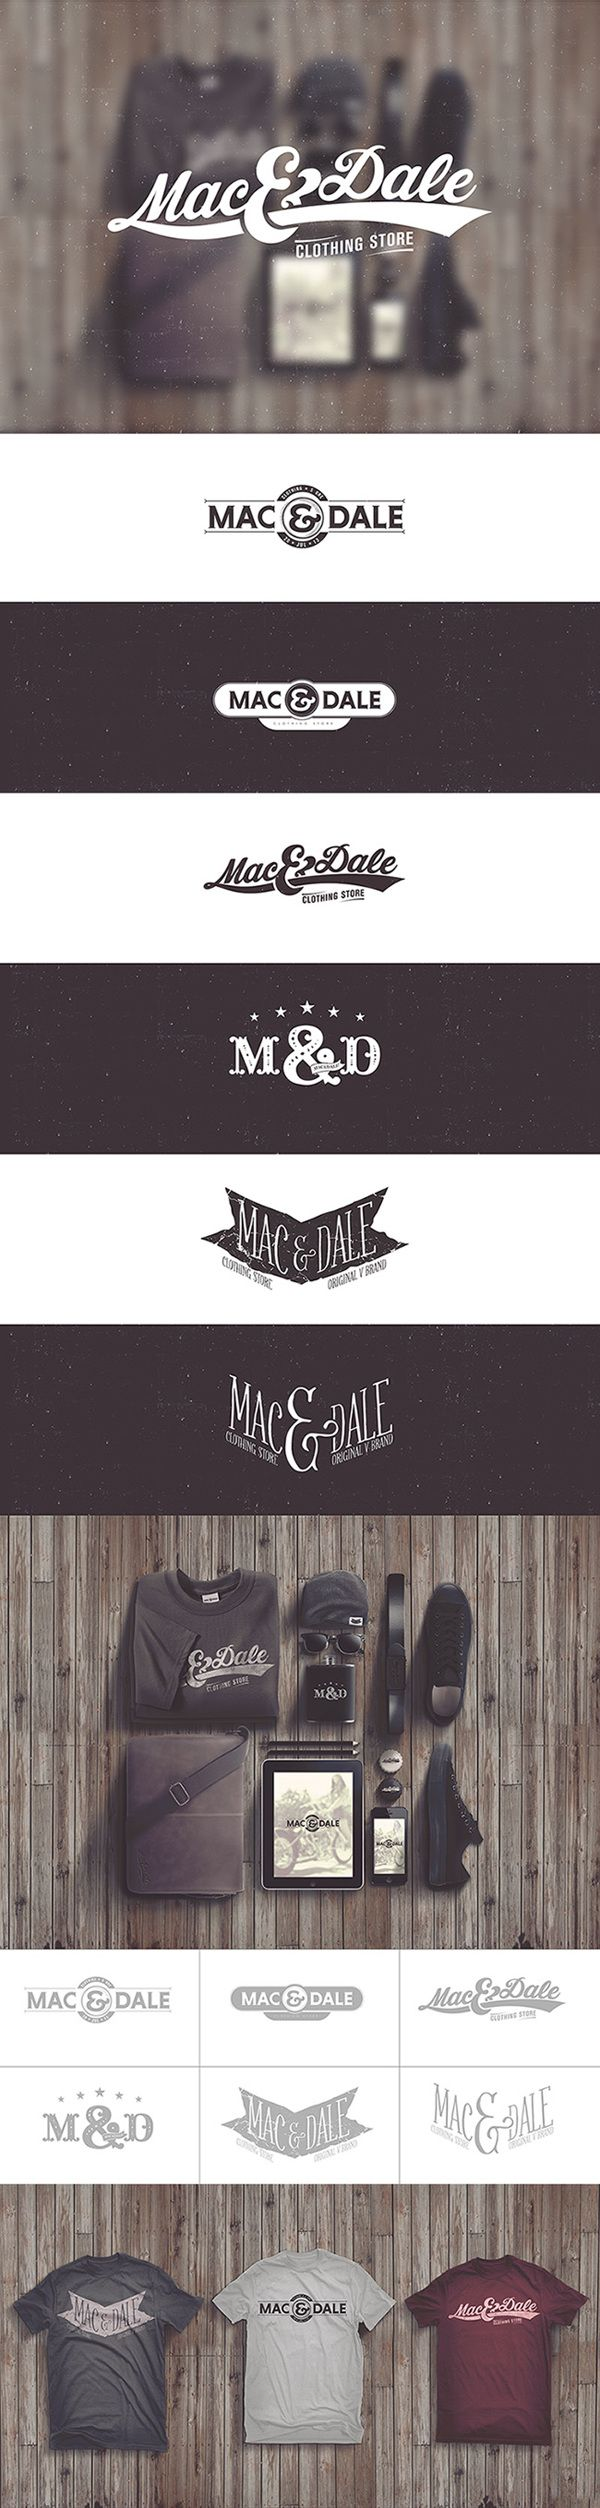 """Mac & Dale by Loopstok , via Behance Rustic Looking """"Logos and Identity Systems"""" December 2013 Behance 2013"""